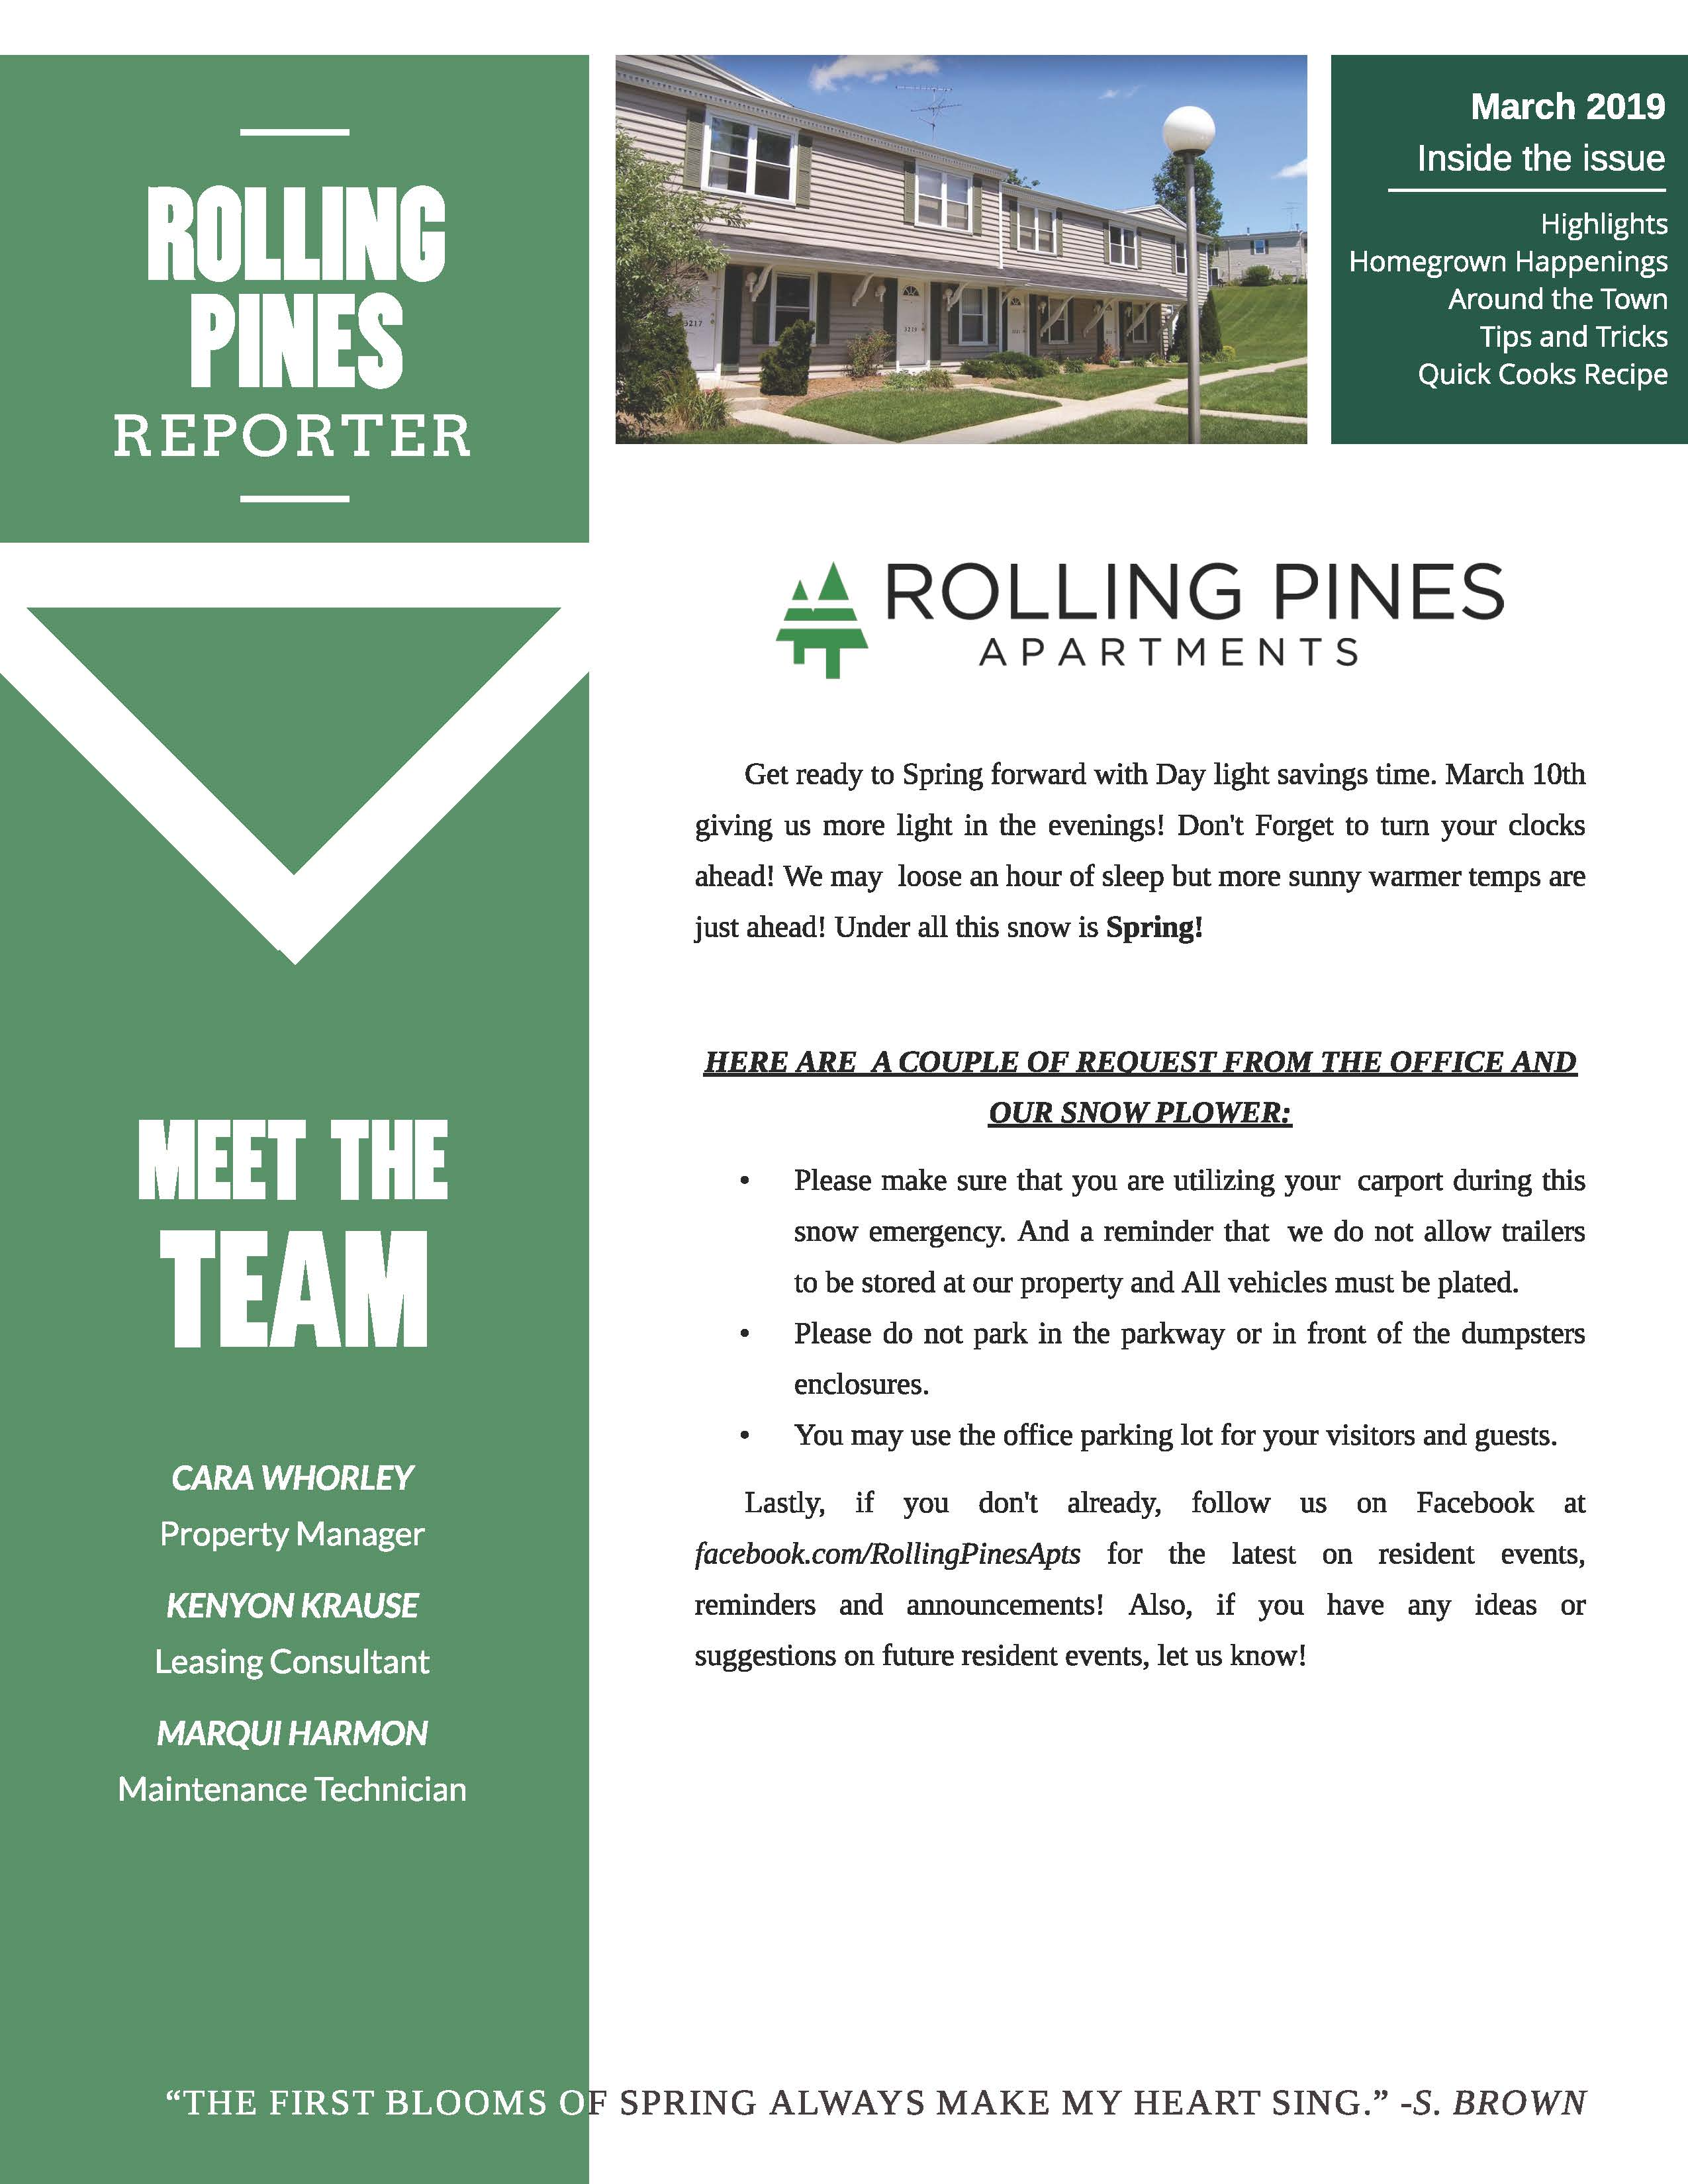 The Rolling Pines Community